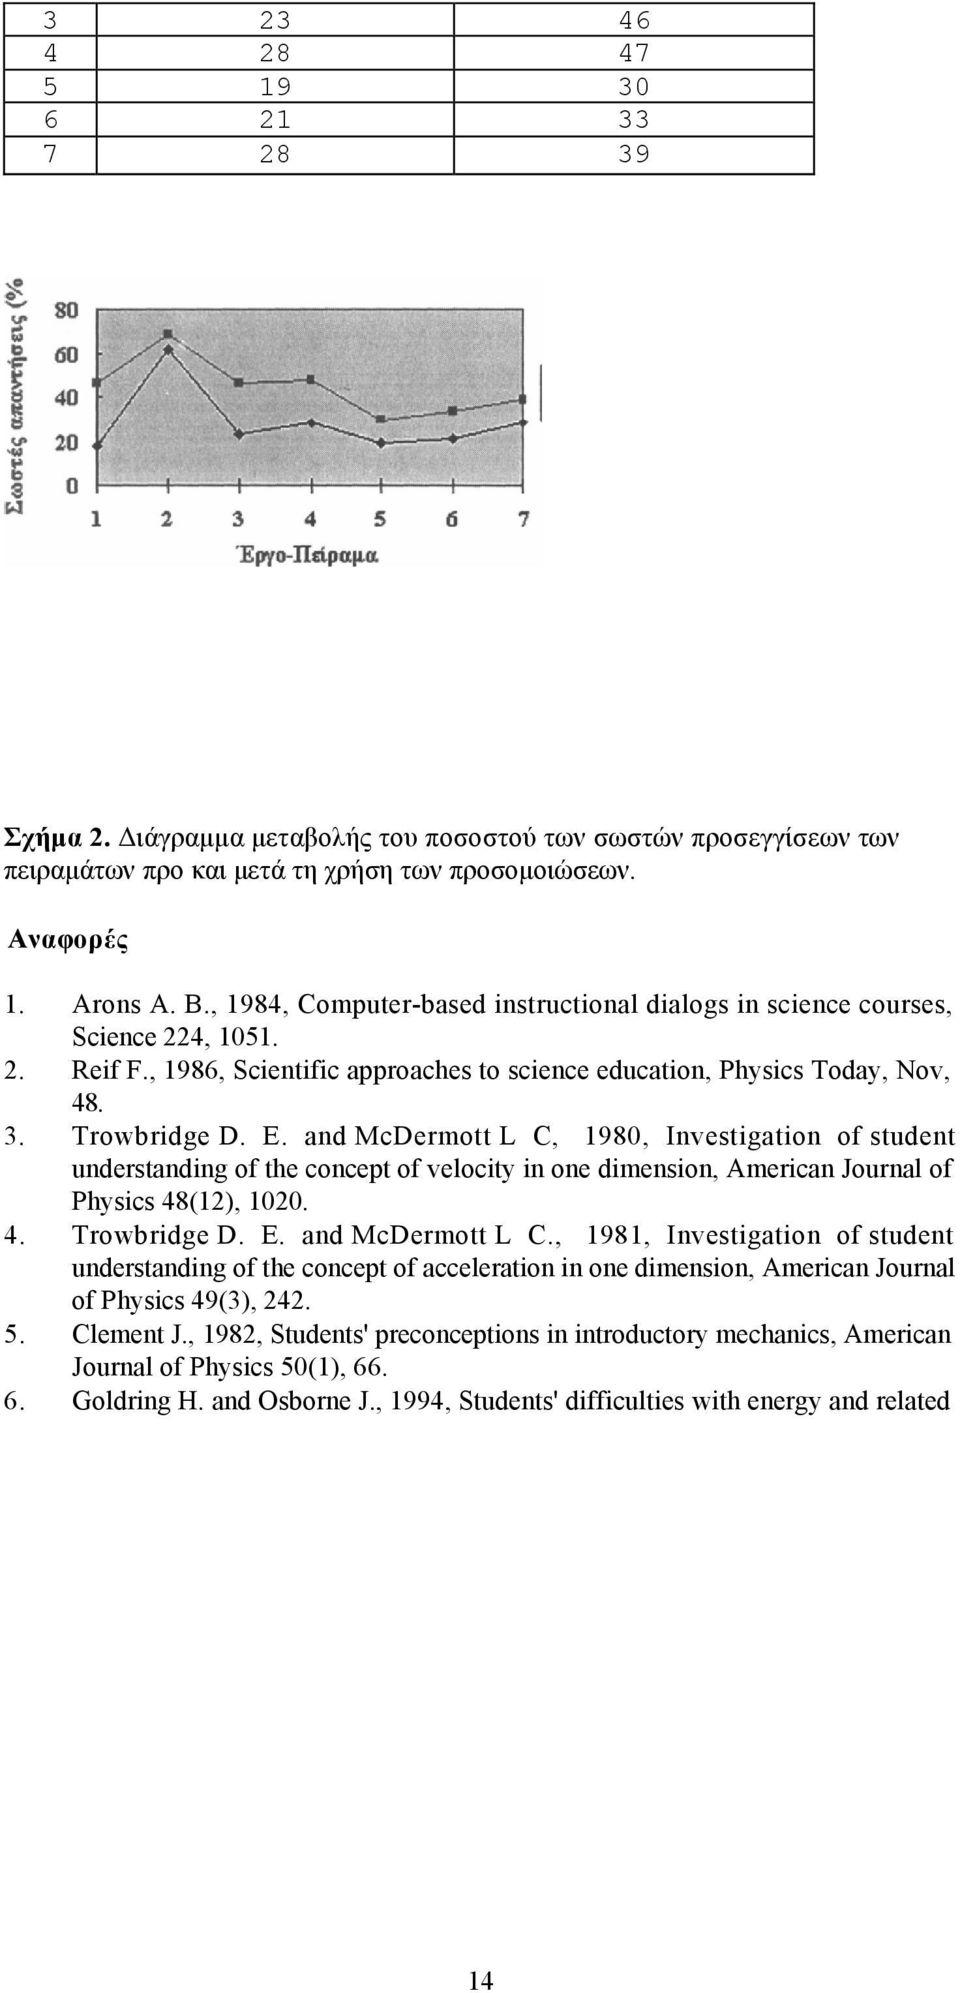 and McDermott L C, 1980, Investigation of student understanding of the concept of velocity in one dimension, American Journal of Physics 48(12), 1020. 4. Trowbridge D. E. and McDermott L C.